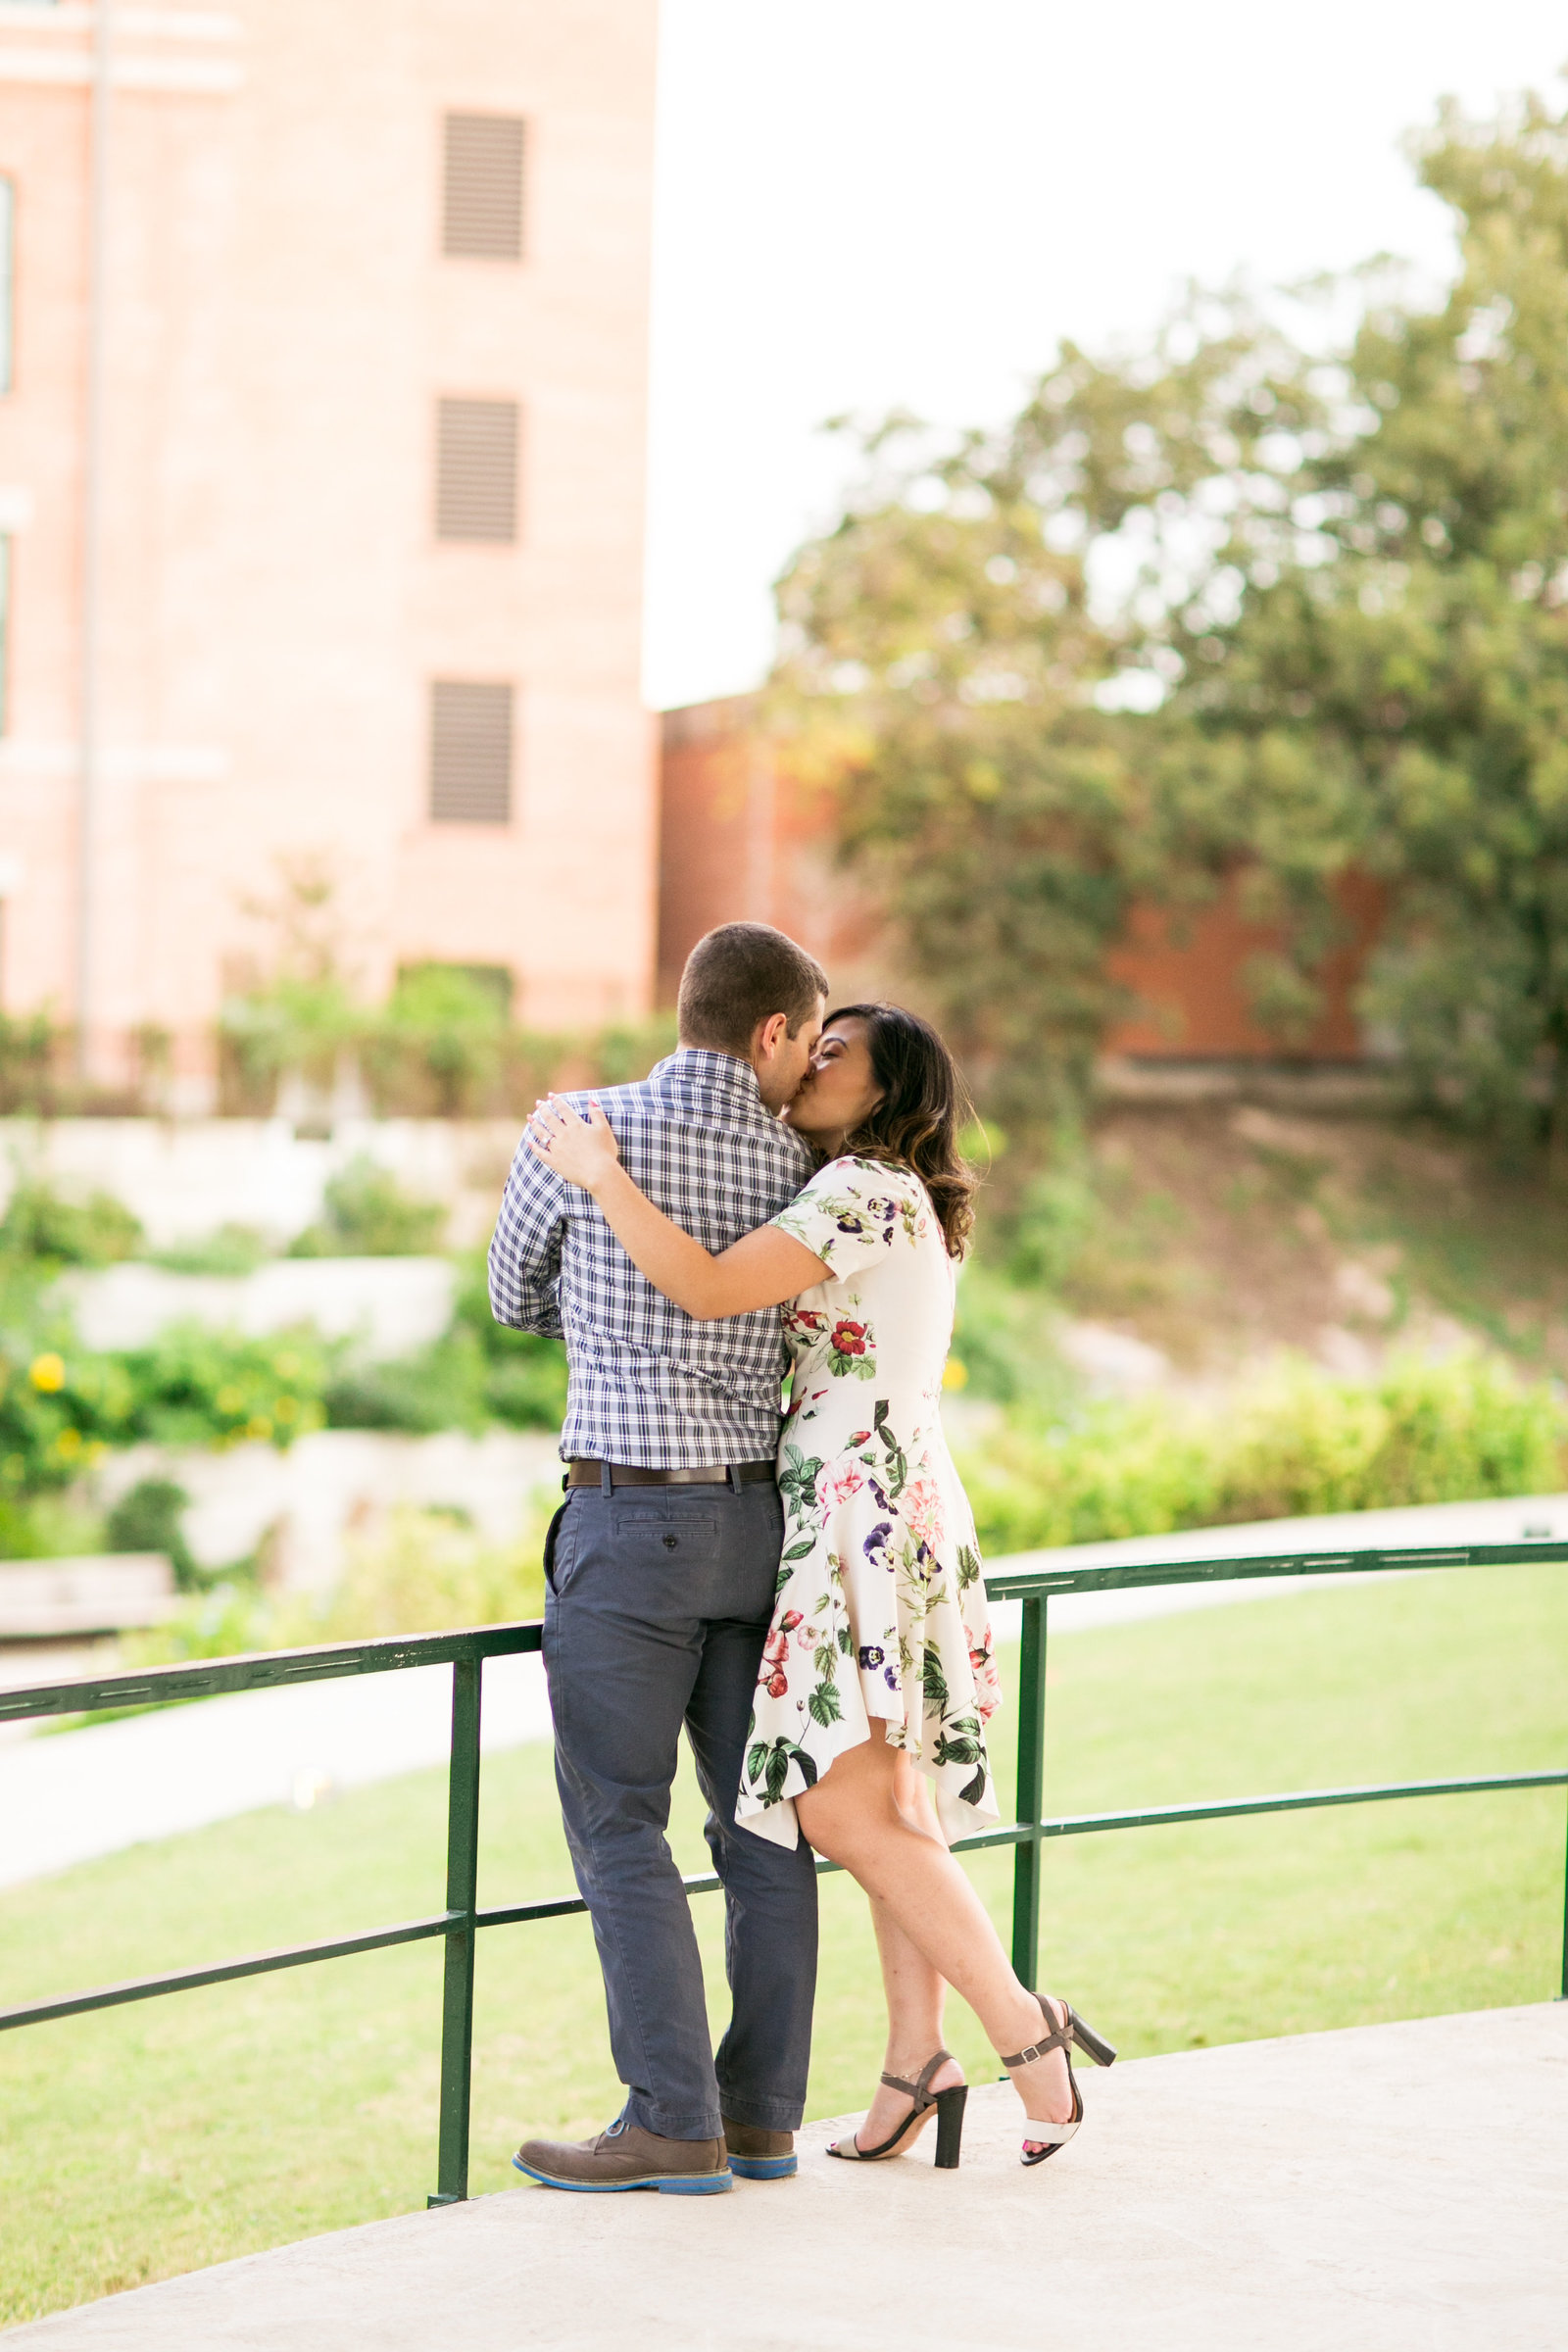 the-pearl-brewery-engagement-session-fall-october-san-antonio-texas-photo-107